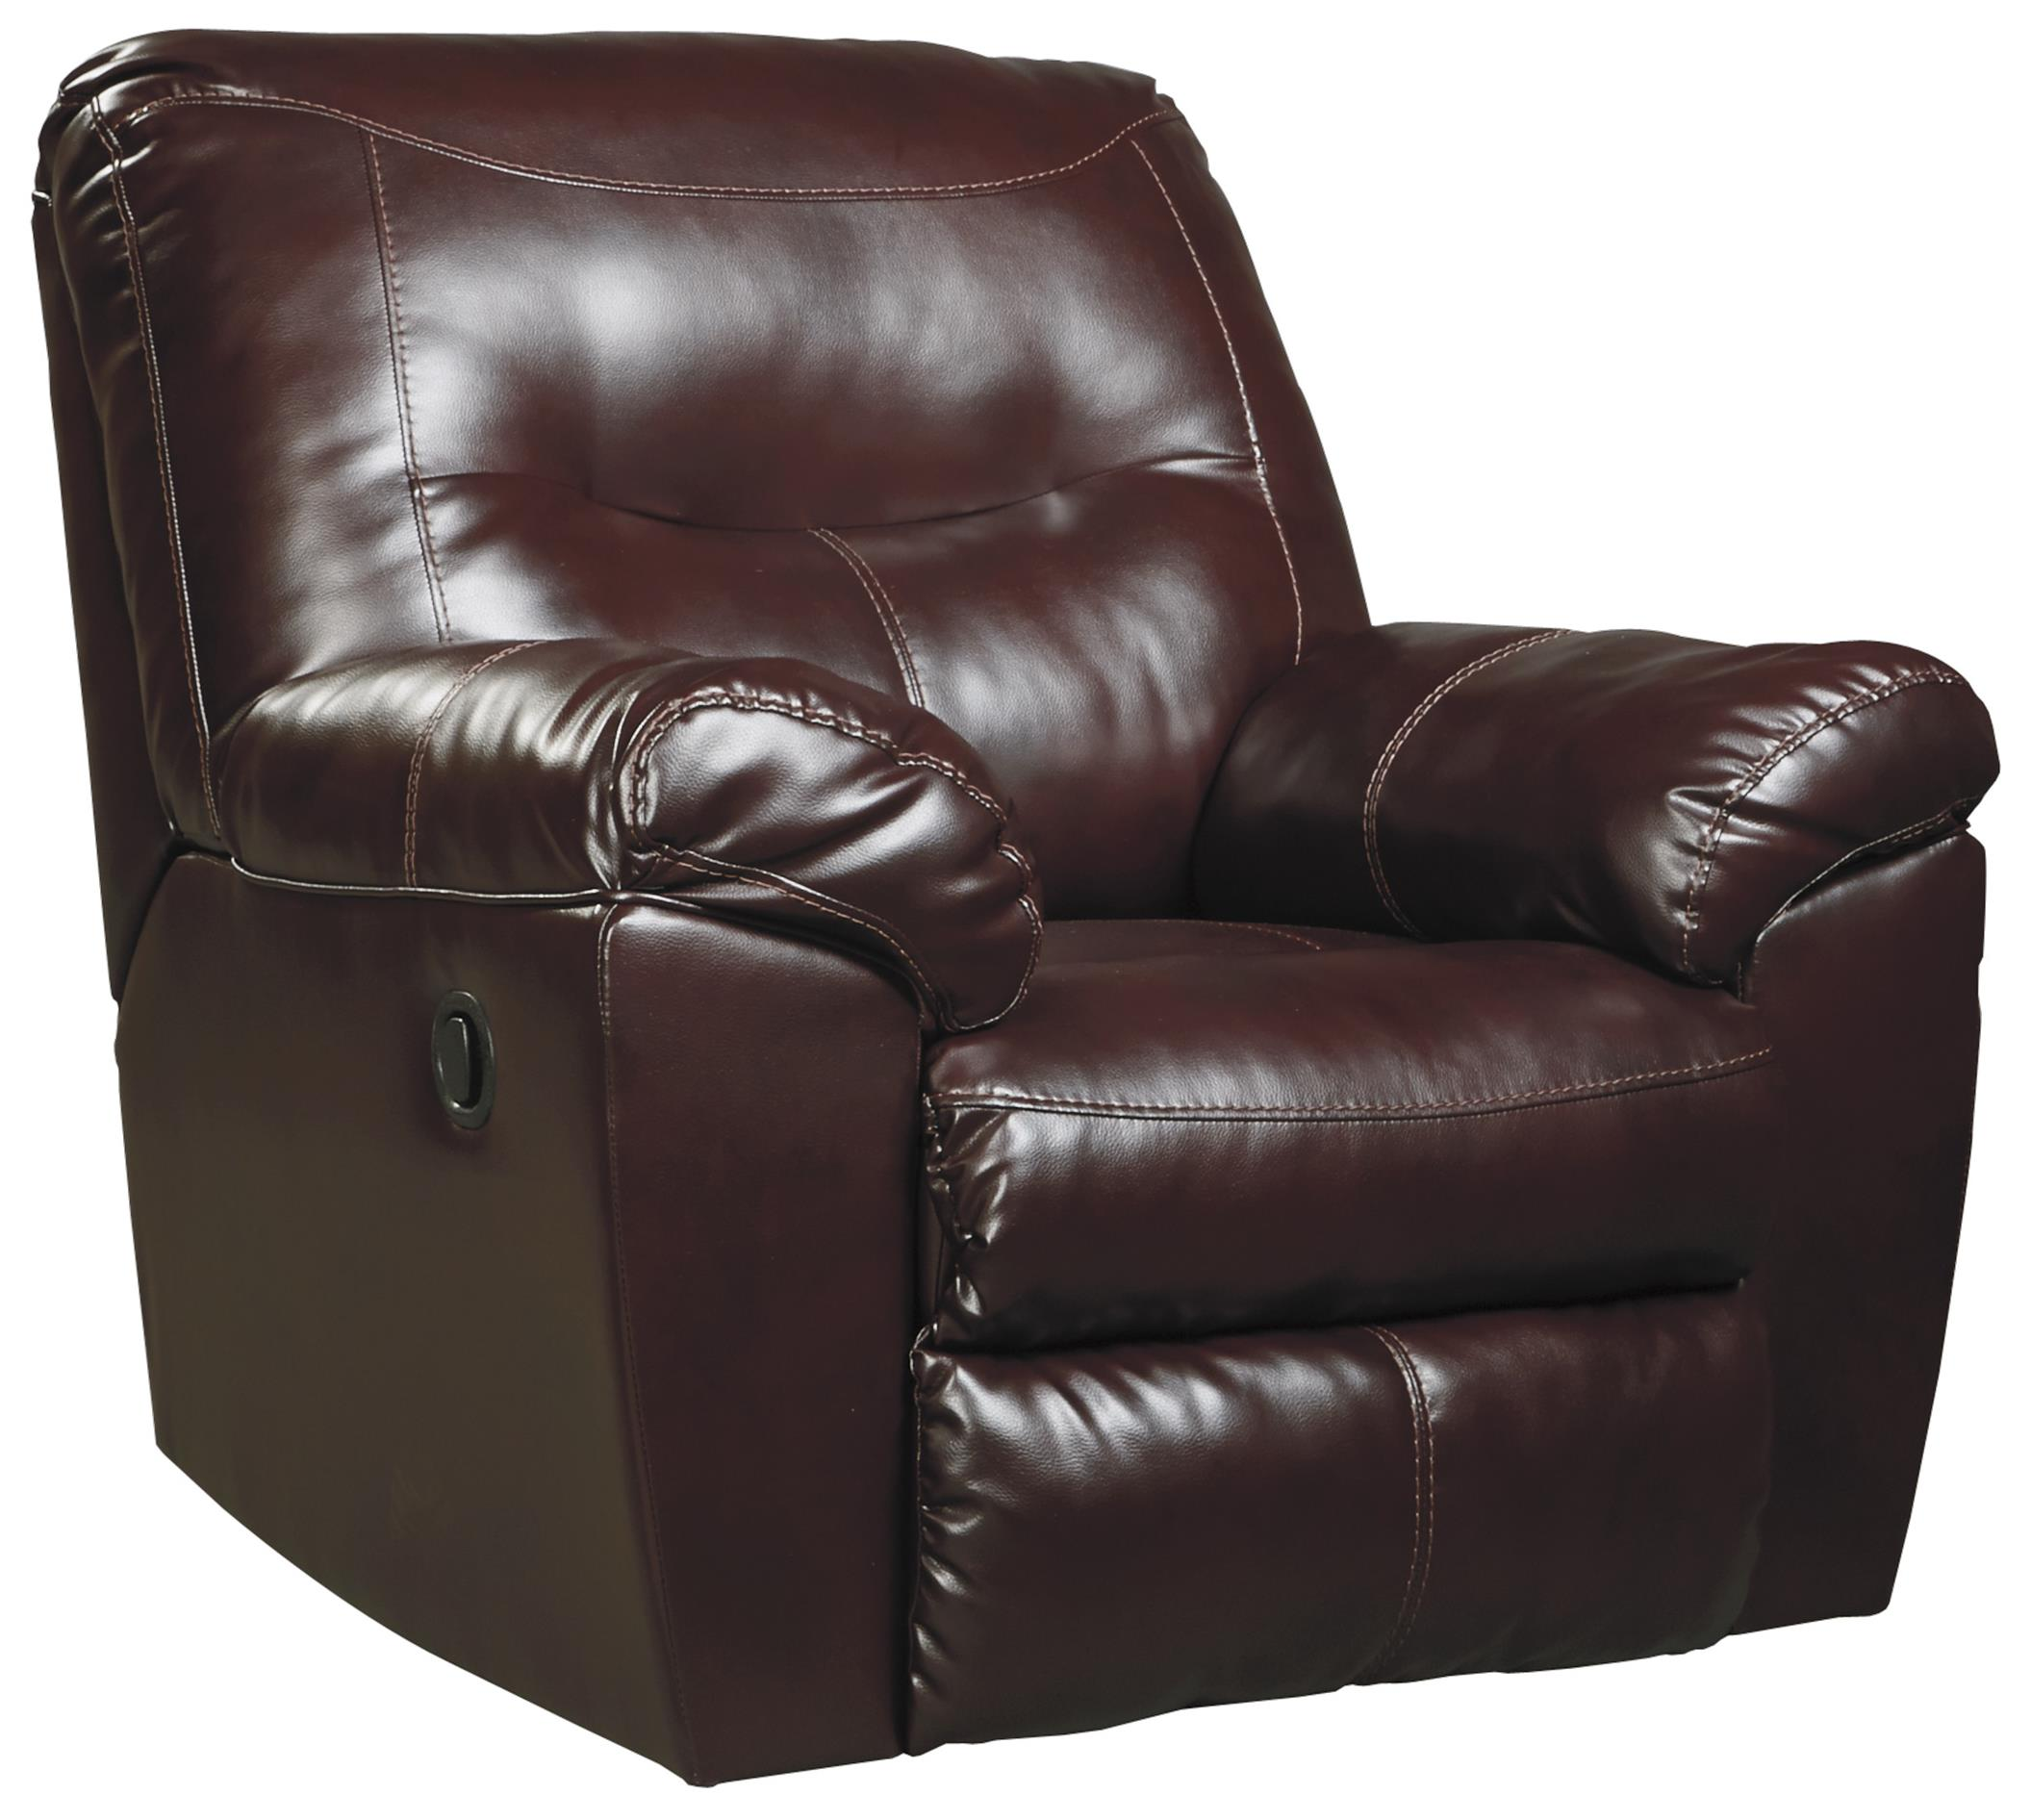 Signature Design by Ashley Kilzer DuraBlend® Rocker Recliner - Item Number: 8470225